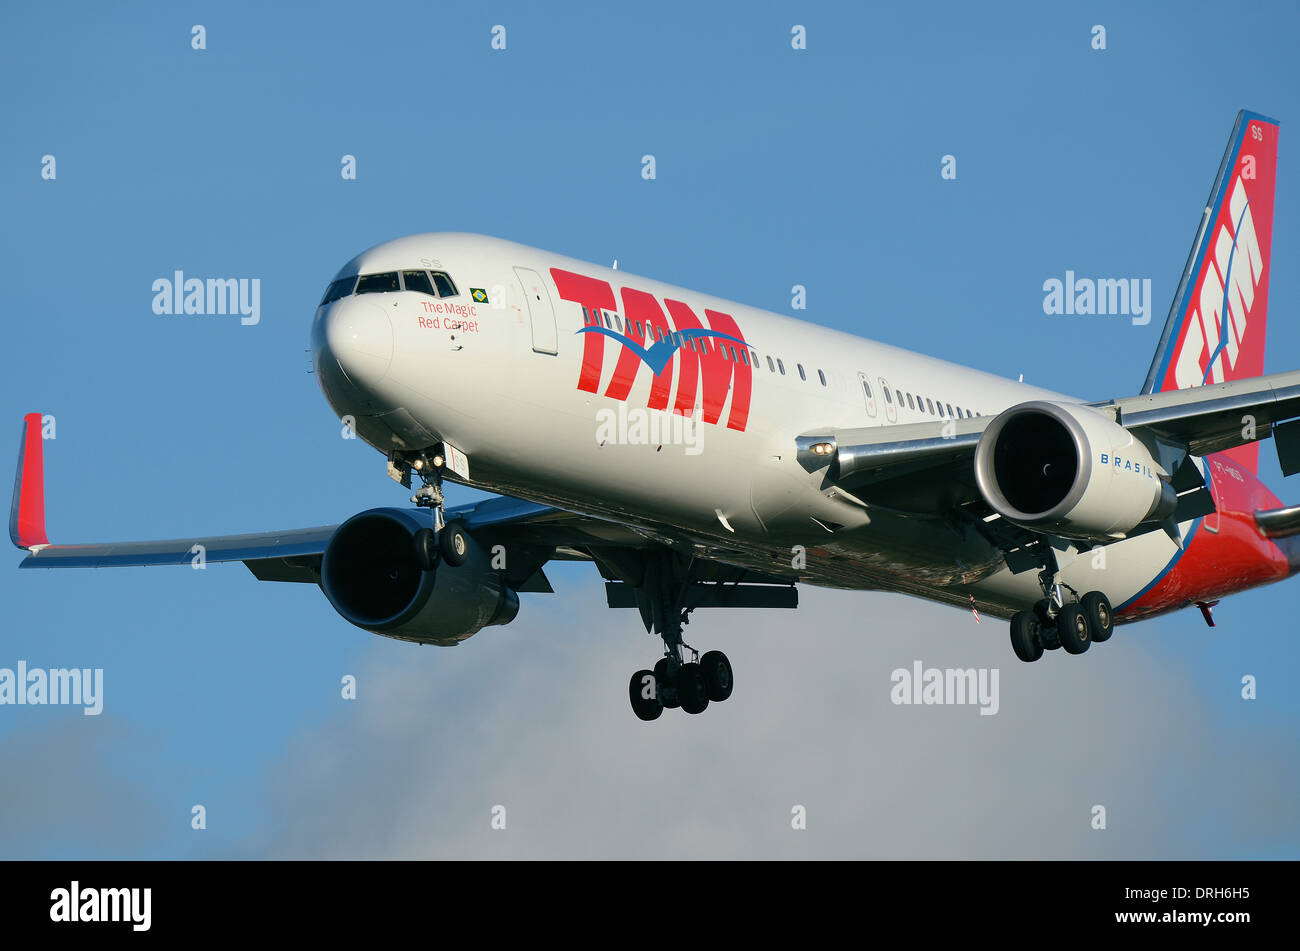 TAM Airlines is the Brazilian brand of LATAM Airlines Group. LATAM Boeing 767 PT-MSS landing at London Heathrow Airport. The magic red carpet slogan - Stock Image